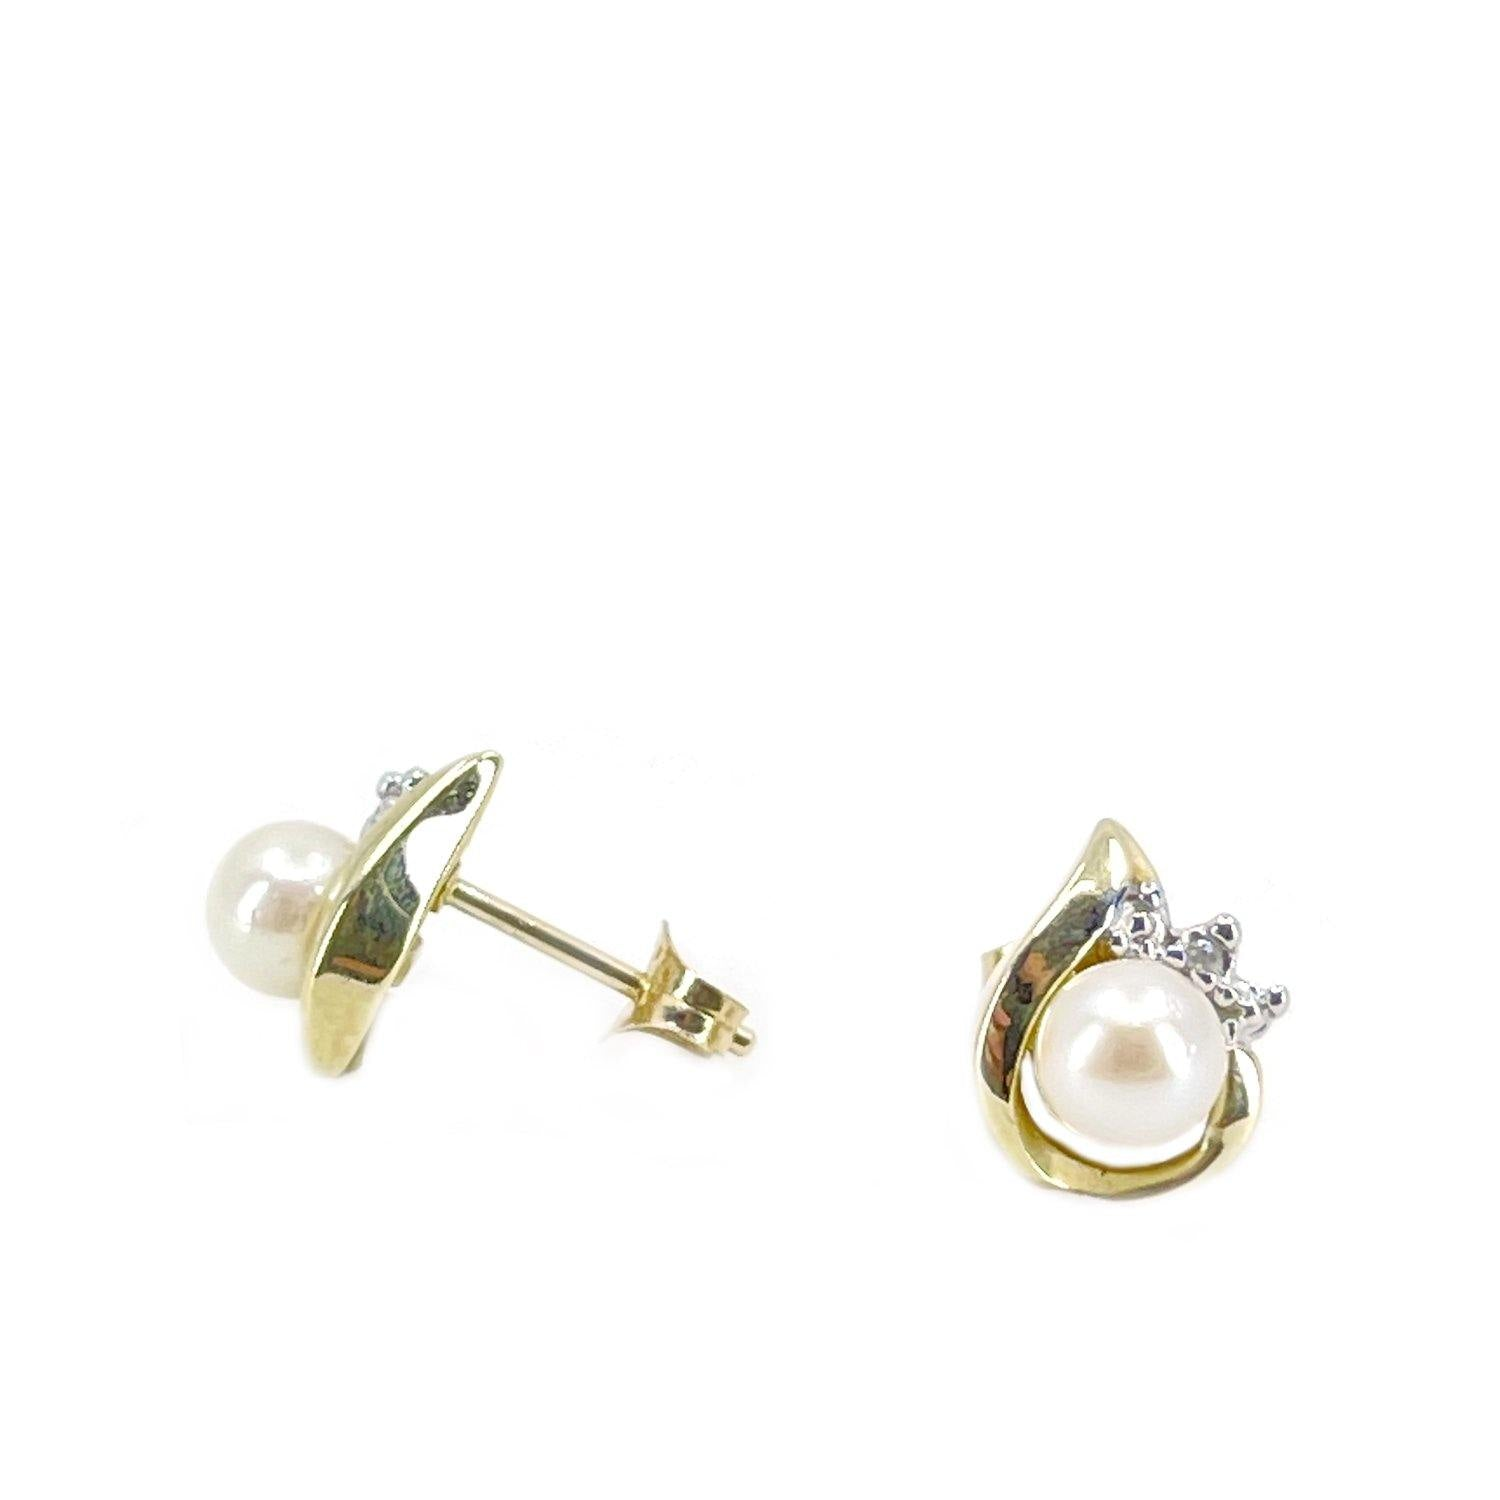 Retro Akoya Saltwater Cultured Pearl Diamond Pierced Earrings- 10K Yellow Gold